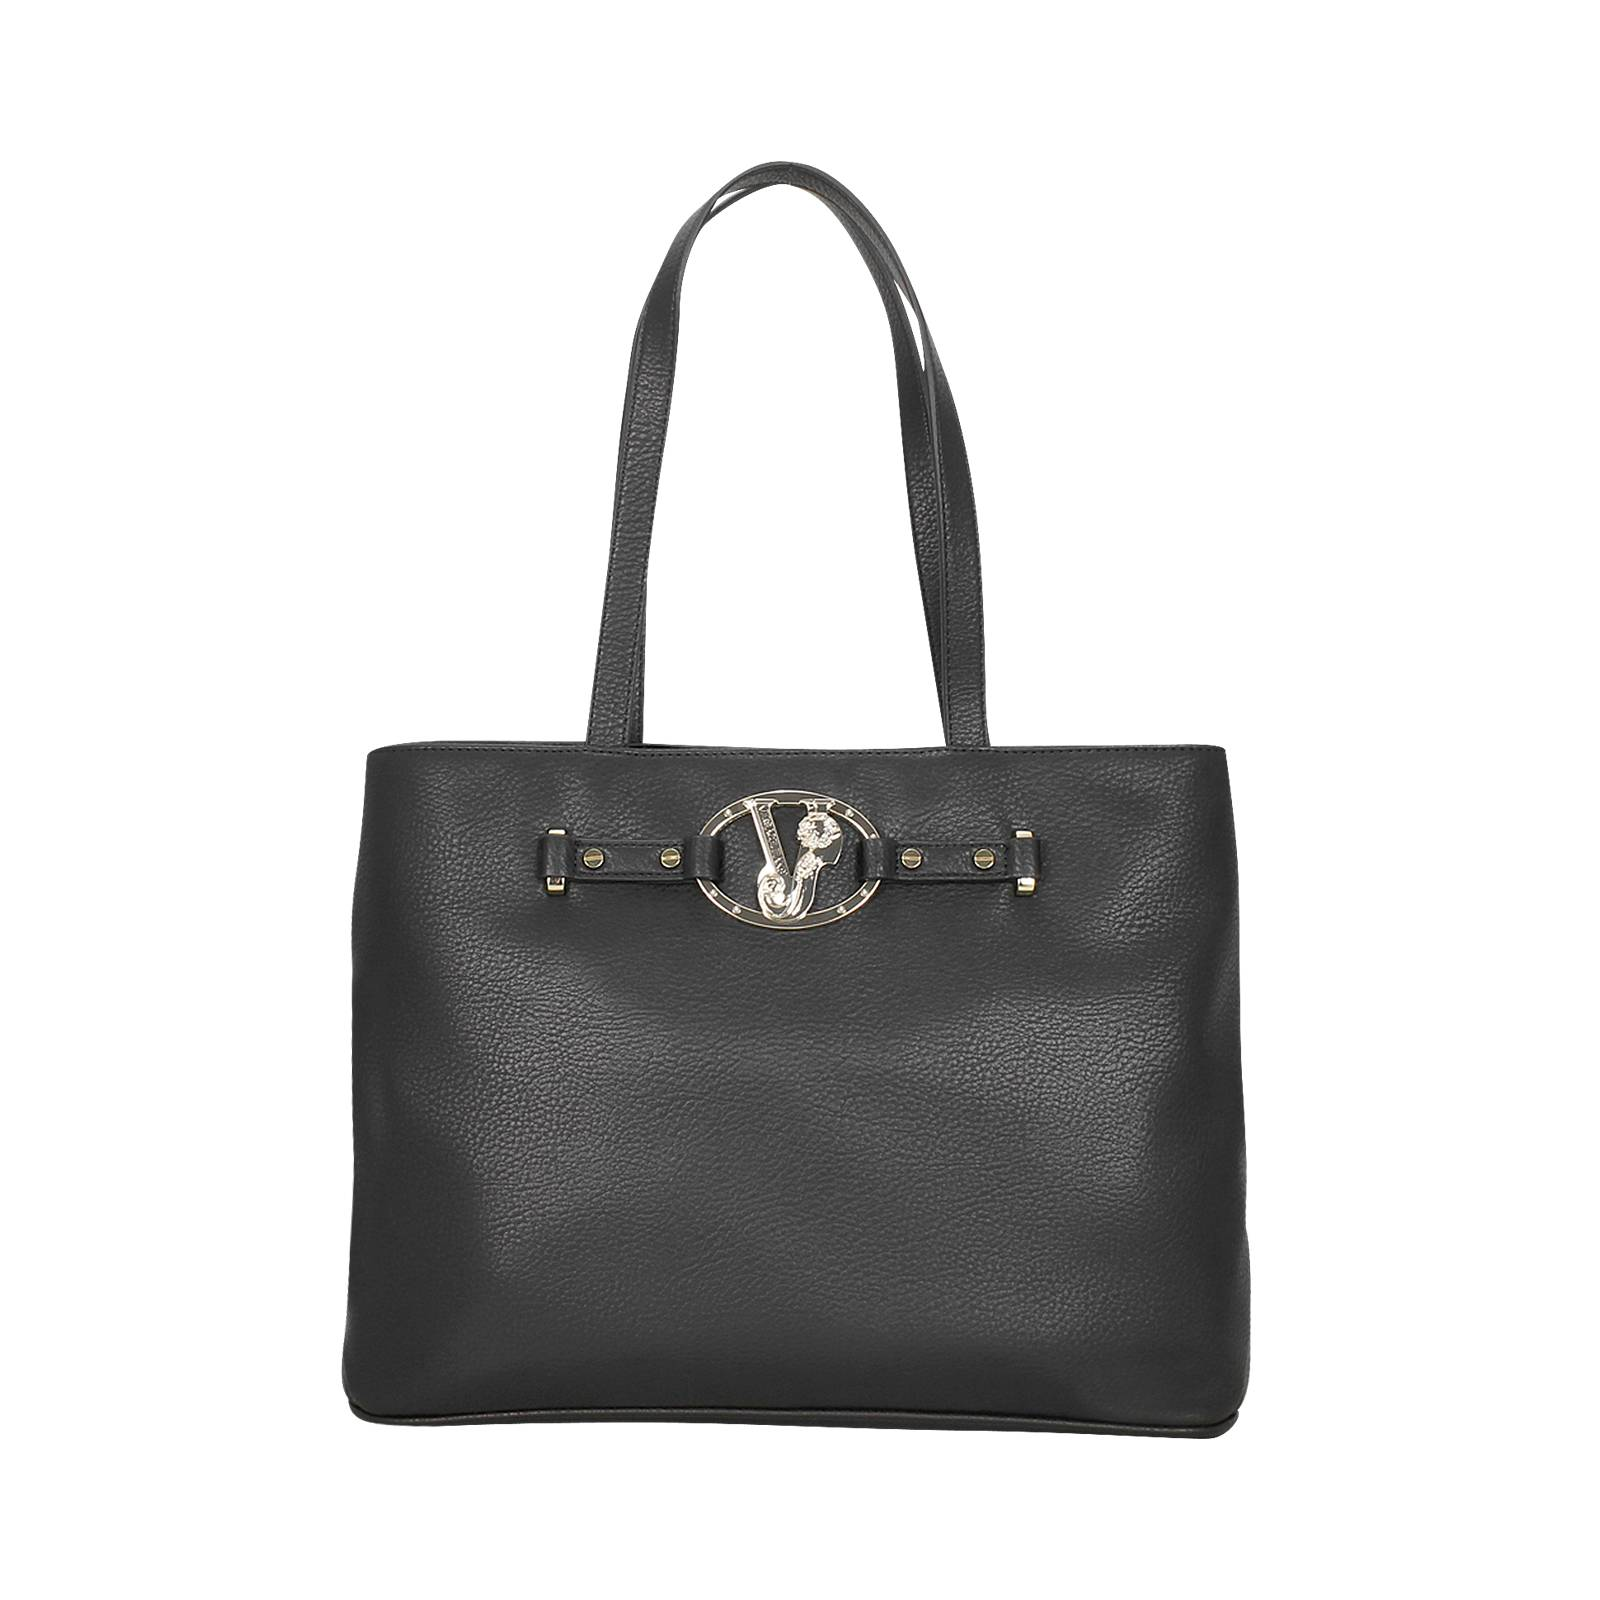 d8b0f39dc Torrijos - Versace Jeans Women's Handbag made of synthetic leather ...